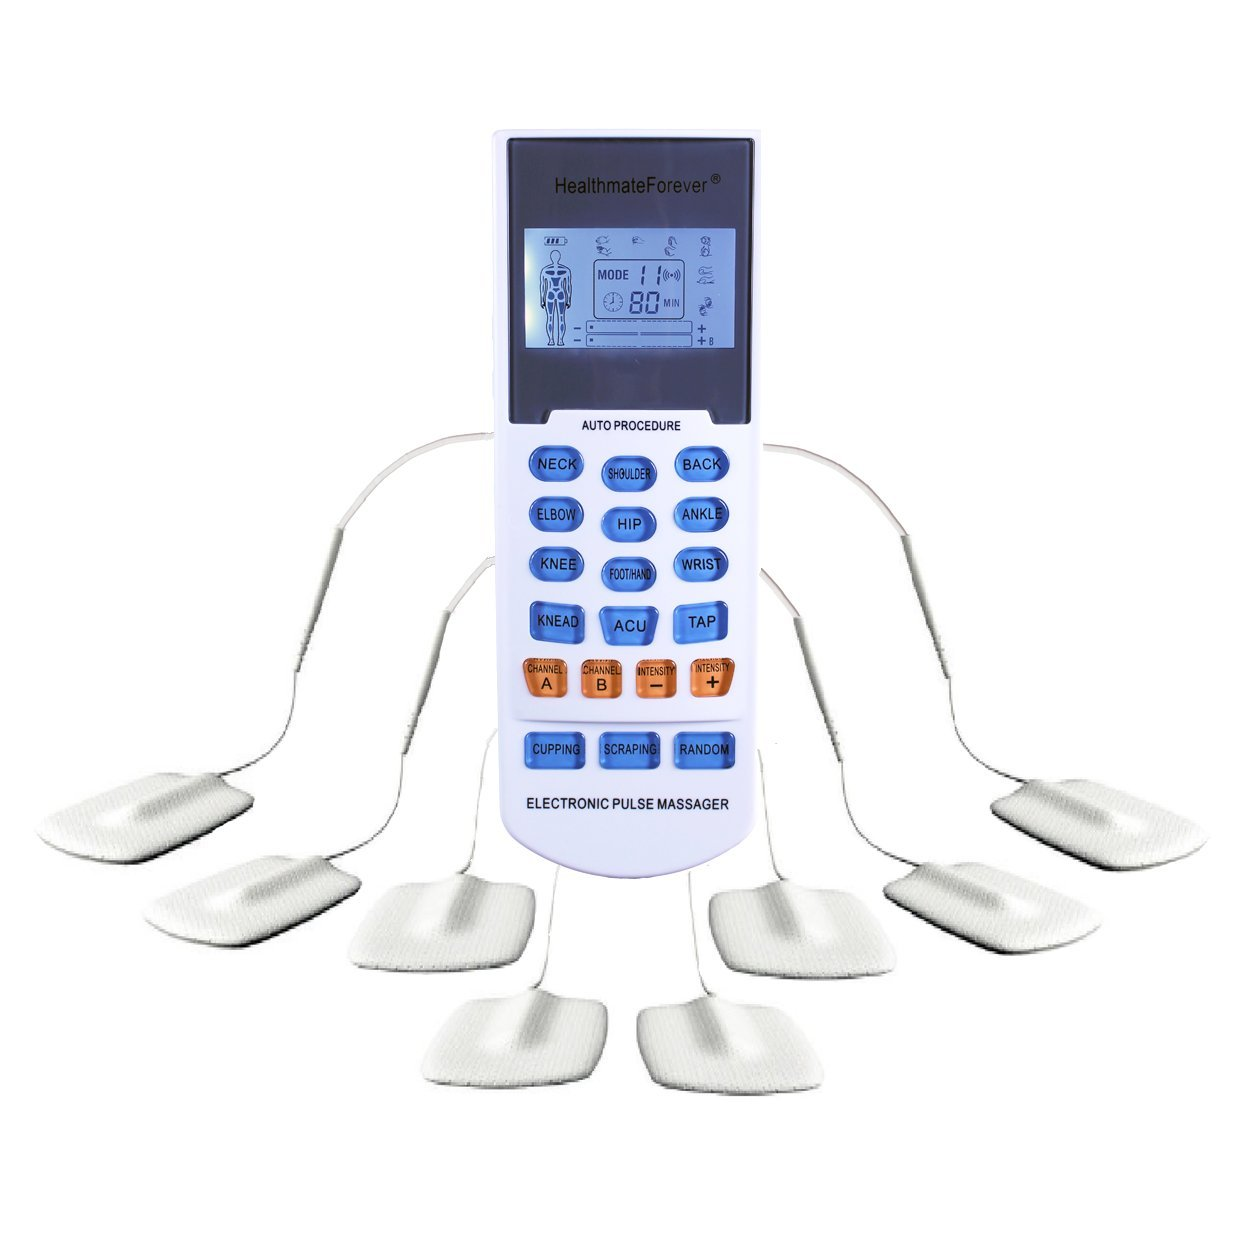 HealthmateForever 15 modes TENS unit | Pain Management | Facilitate Muscle Performance | Rechargeable | 4 Outputs&Dual Channels | Modes on Buttons | Lifetime Warranty | YK15RC